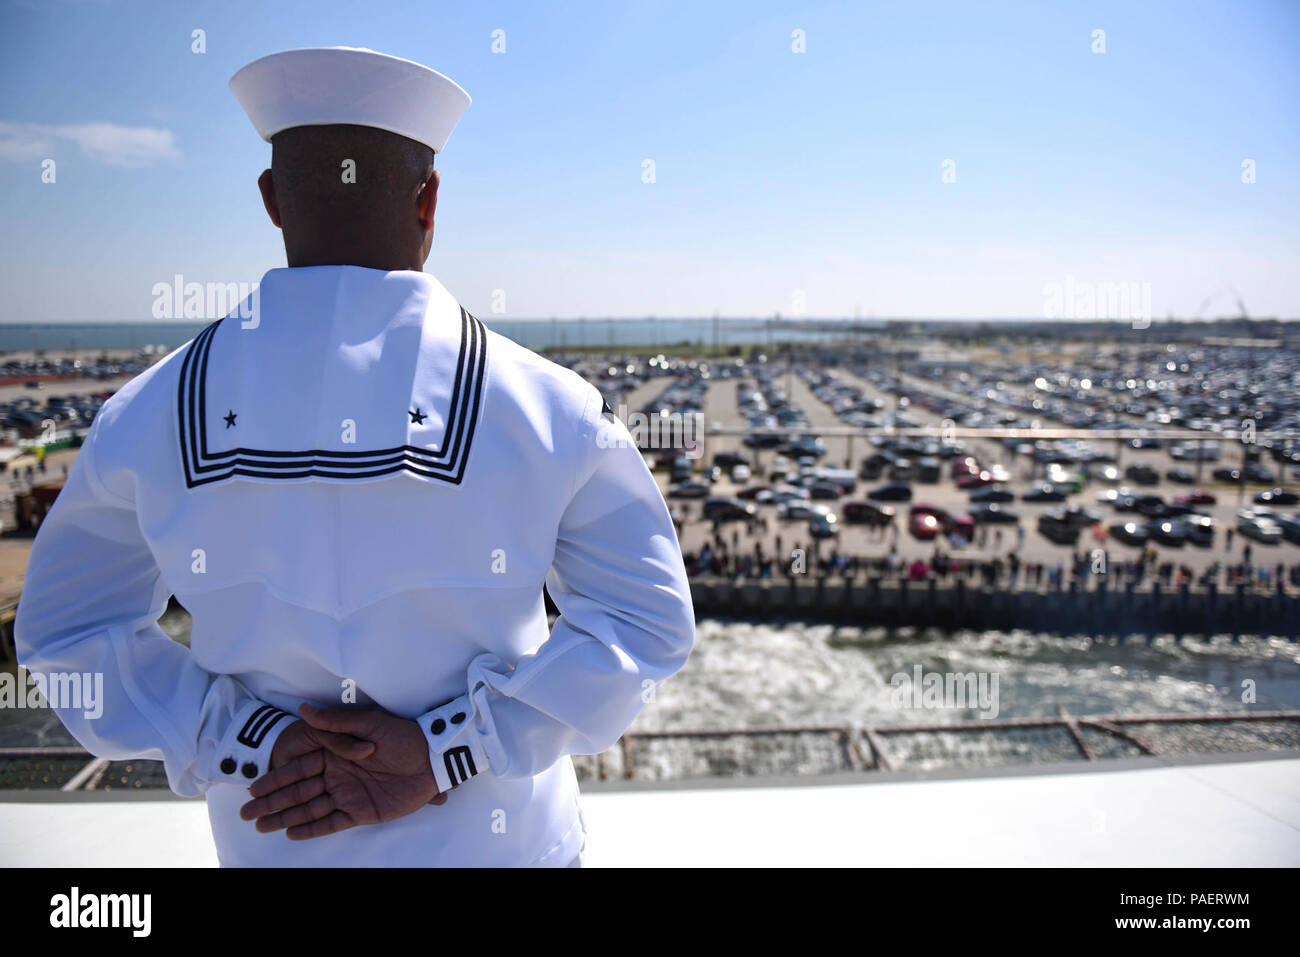 NORFOLK (April 11, 2018) Personnel Specialist 3rd Class Anthony White mans the rails aboard the aircraft carrier USS Harry S. Truman (CVN 75) during the ship's departure from homeport. Harry S. Truman is underway as the flagship for the Harry S. Truman Carrier Strike Group which includes; guided-missile cruiser USS Normandy (CG-60), and guided-missile destroyers USS Arleigh Burke (DDG-51), USS Bulkeley (DDG-84), USS Farragut (DDG-99), USS Forrest Sherman (DDG-98), USS The Sullivans (DDG-68), USS Winston S. Churchill (DDG-81) for a regularly scheduled deployment. Stock Photo